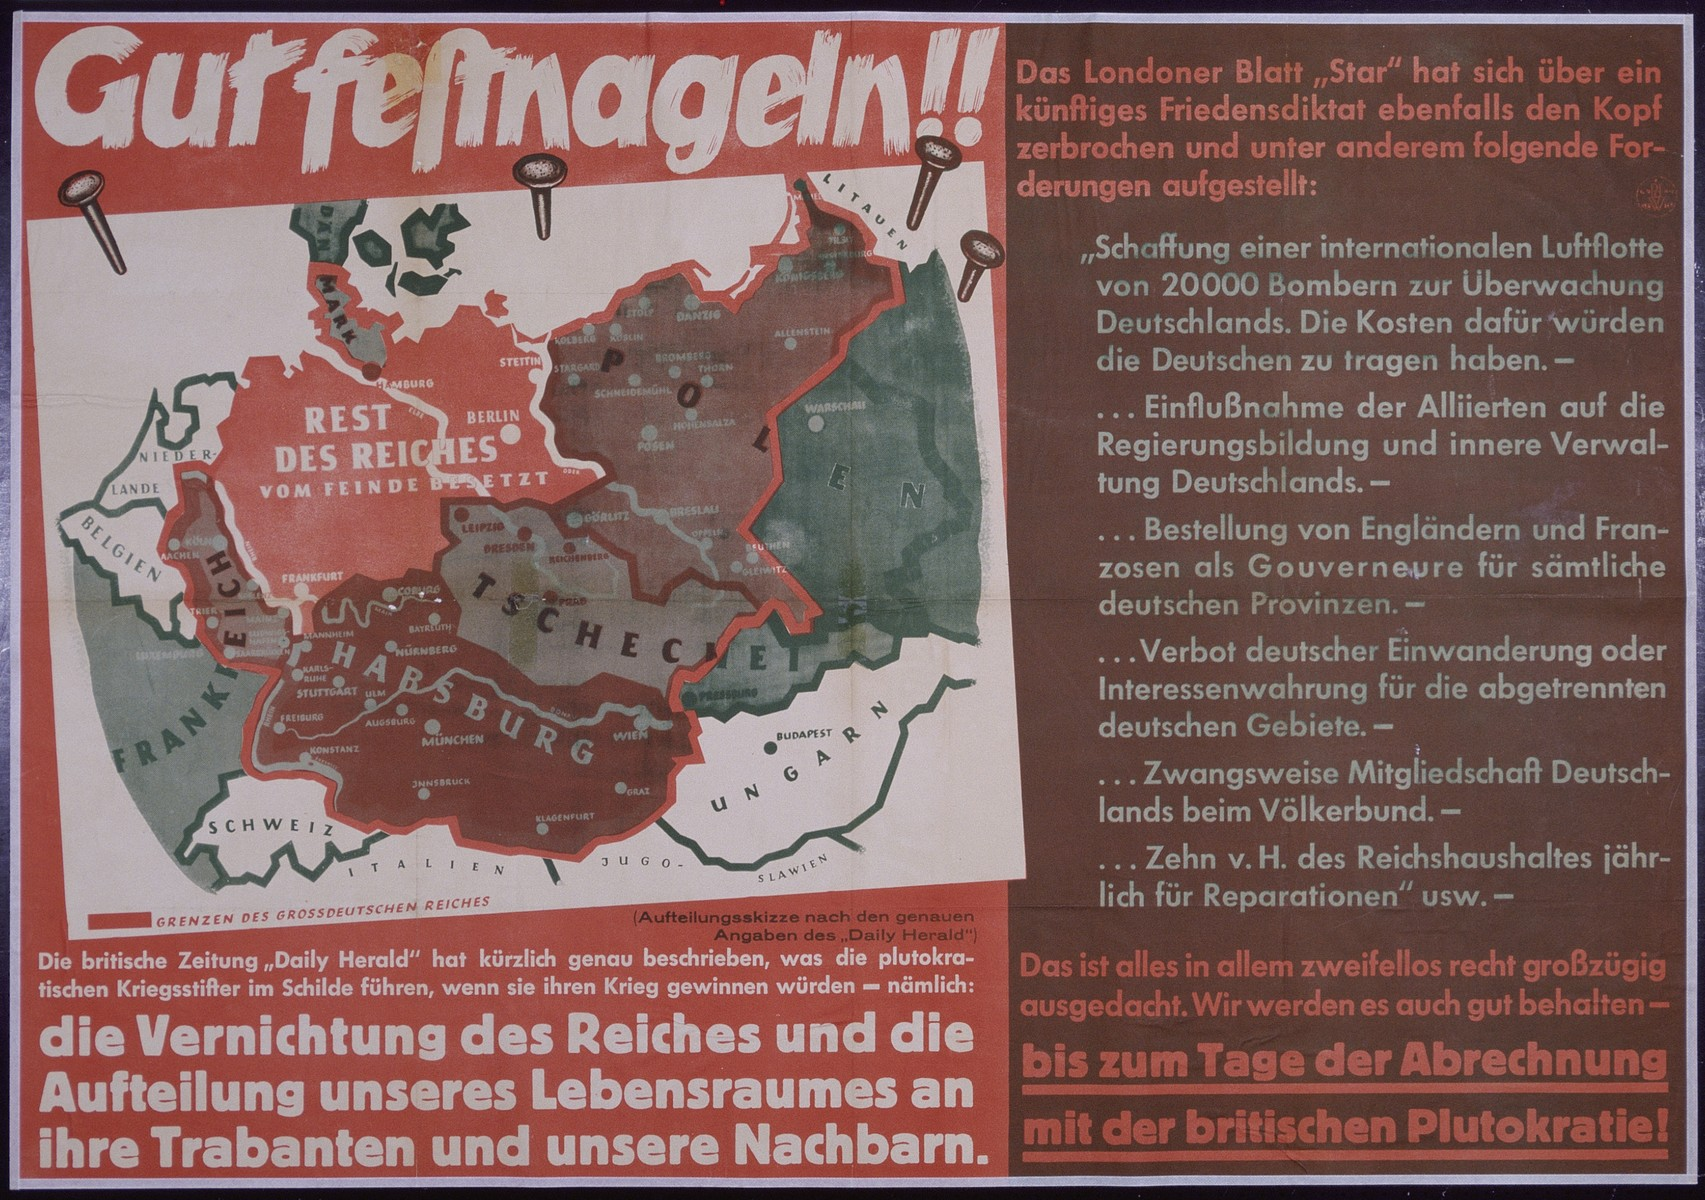 """Nazi propaganda poster entitled, """"Gut festnageln,""""  issued by the """"Parole der Woche,"""" a wall newspaper (Wandzeitung) published by the National Socialist Party propaganda office in Munich."""